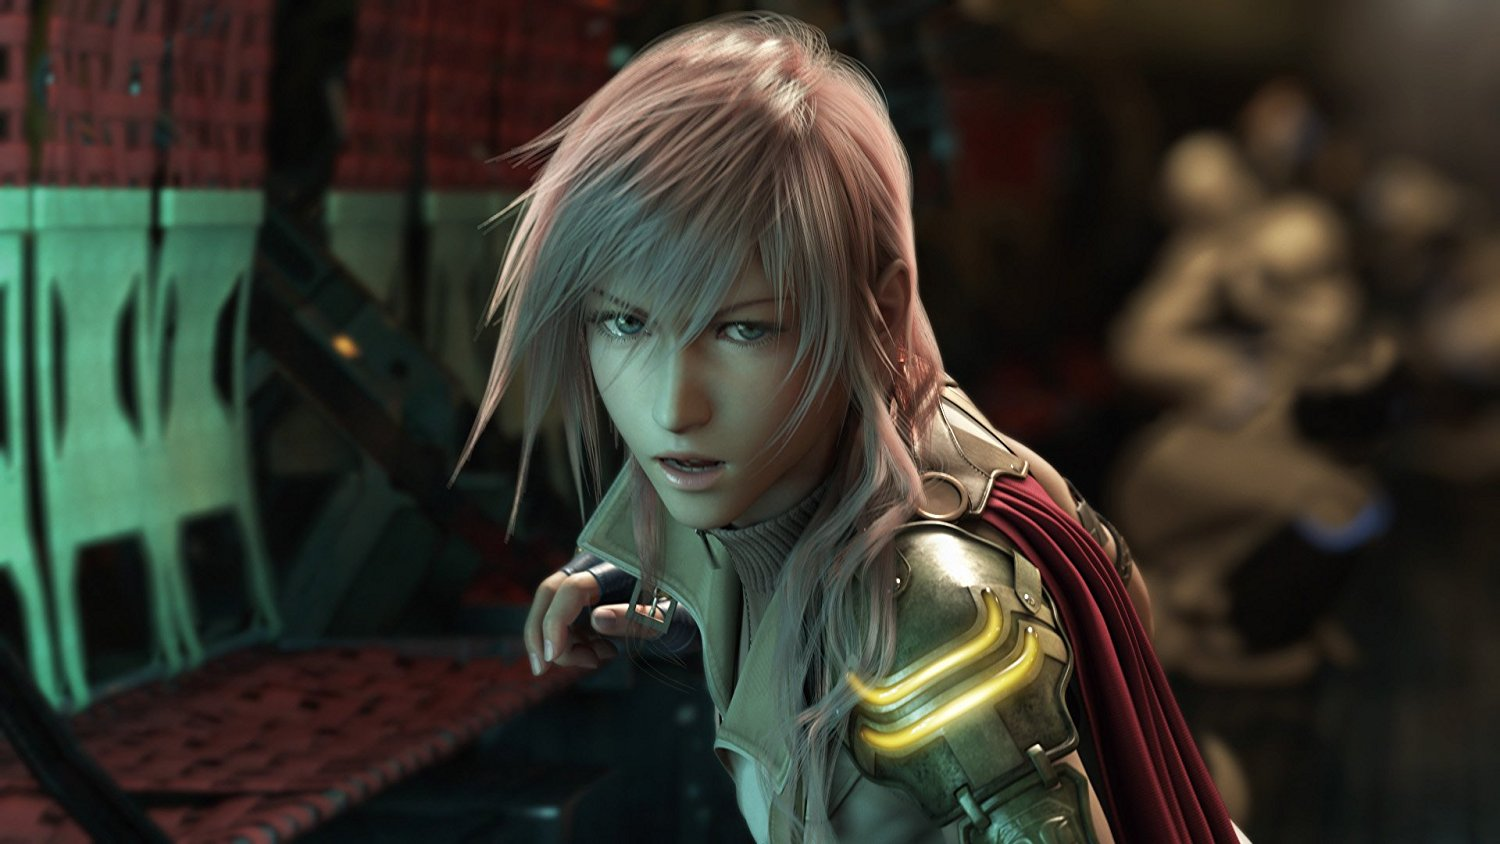 Final Fantasy 13 On Xbox One X Has Two Graphical Modes, Can